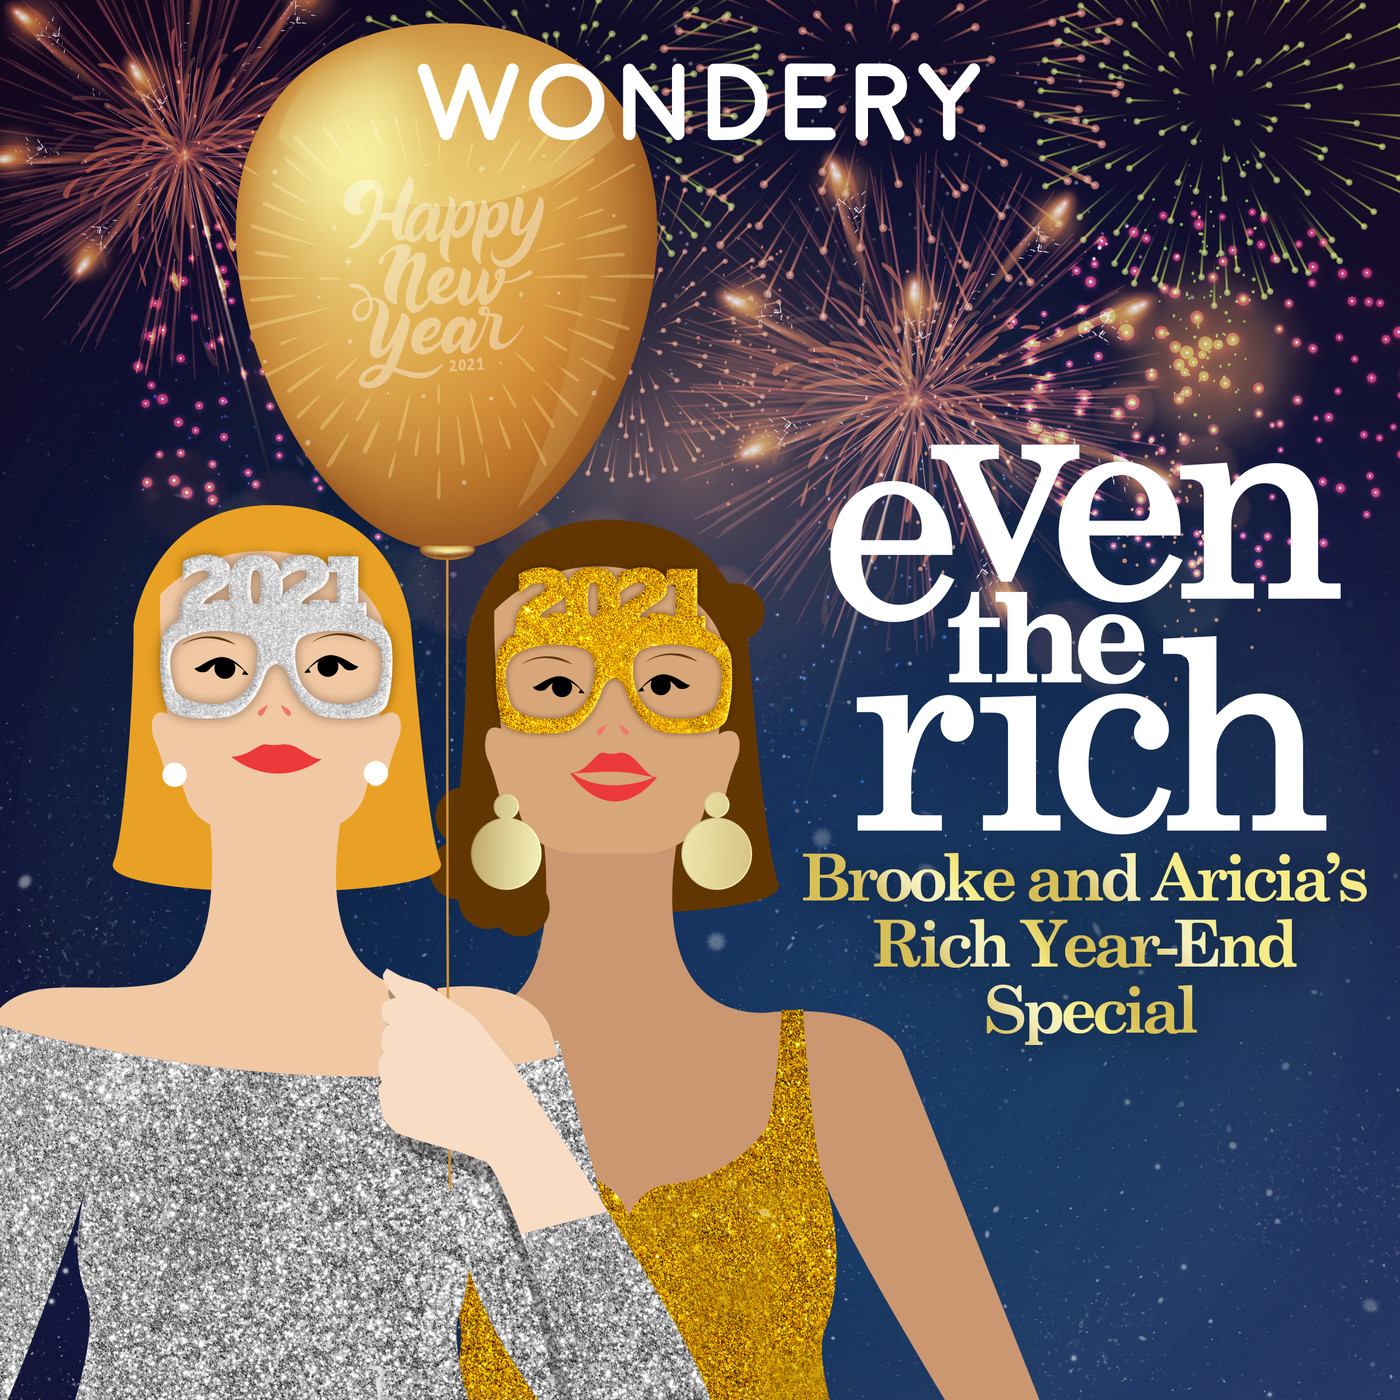 Brooke and Aricia's Big Rich Year-End Special   1